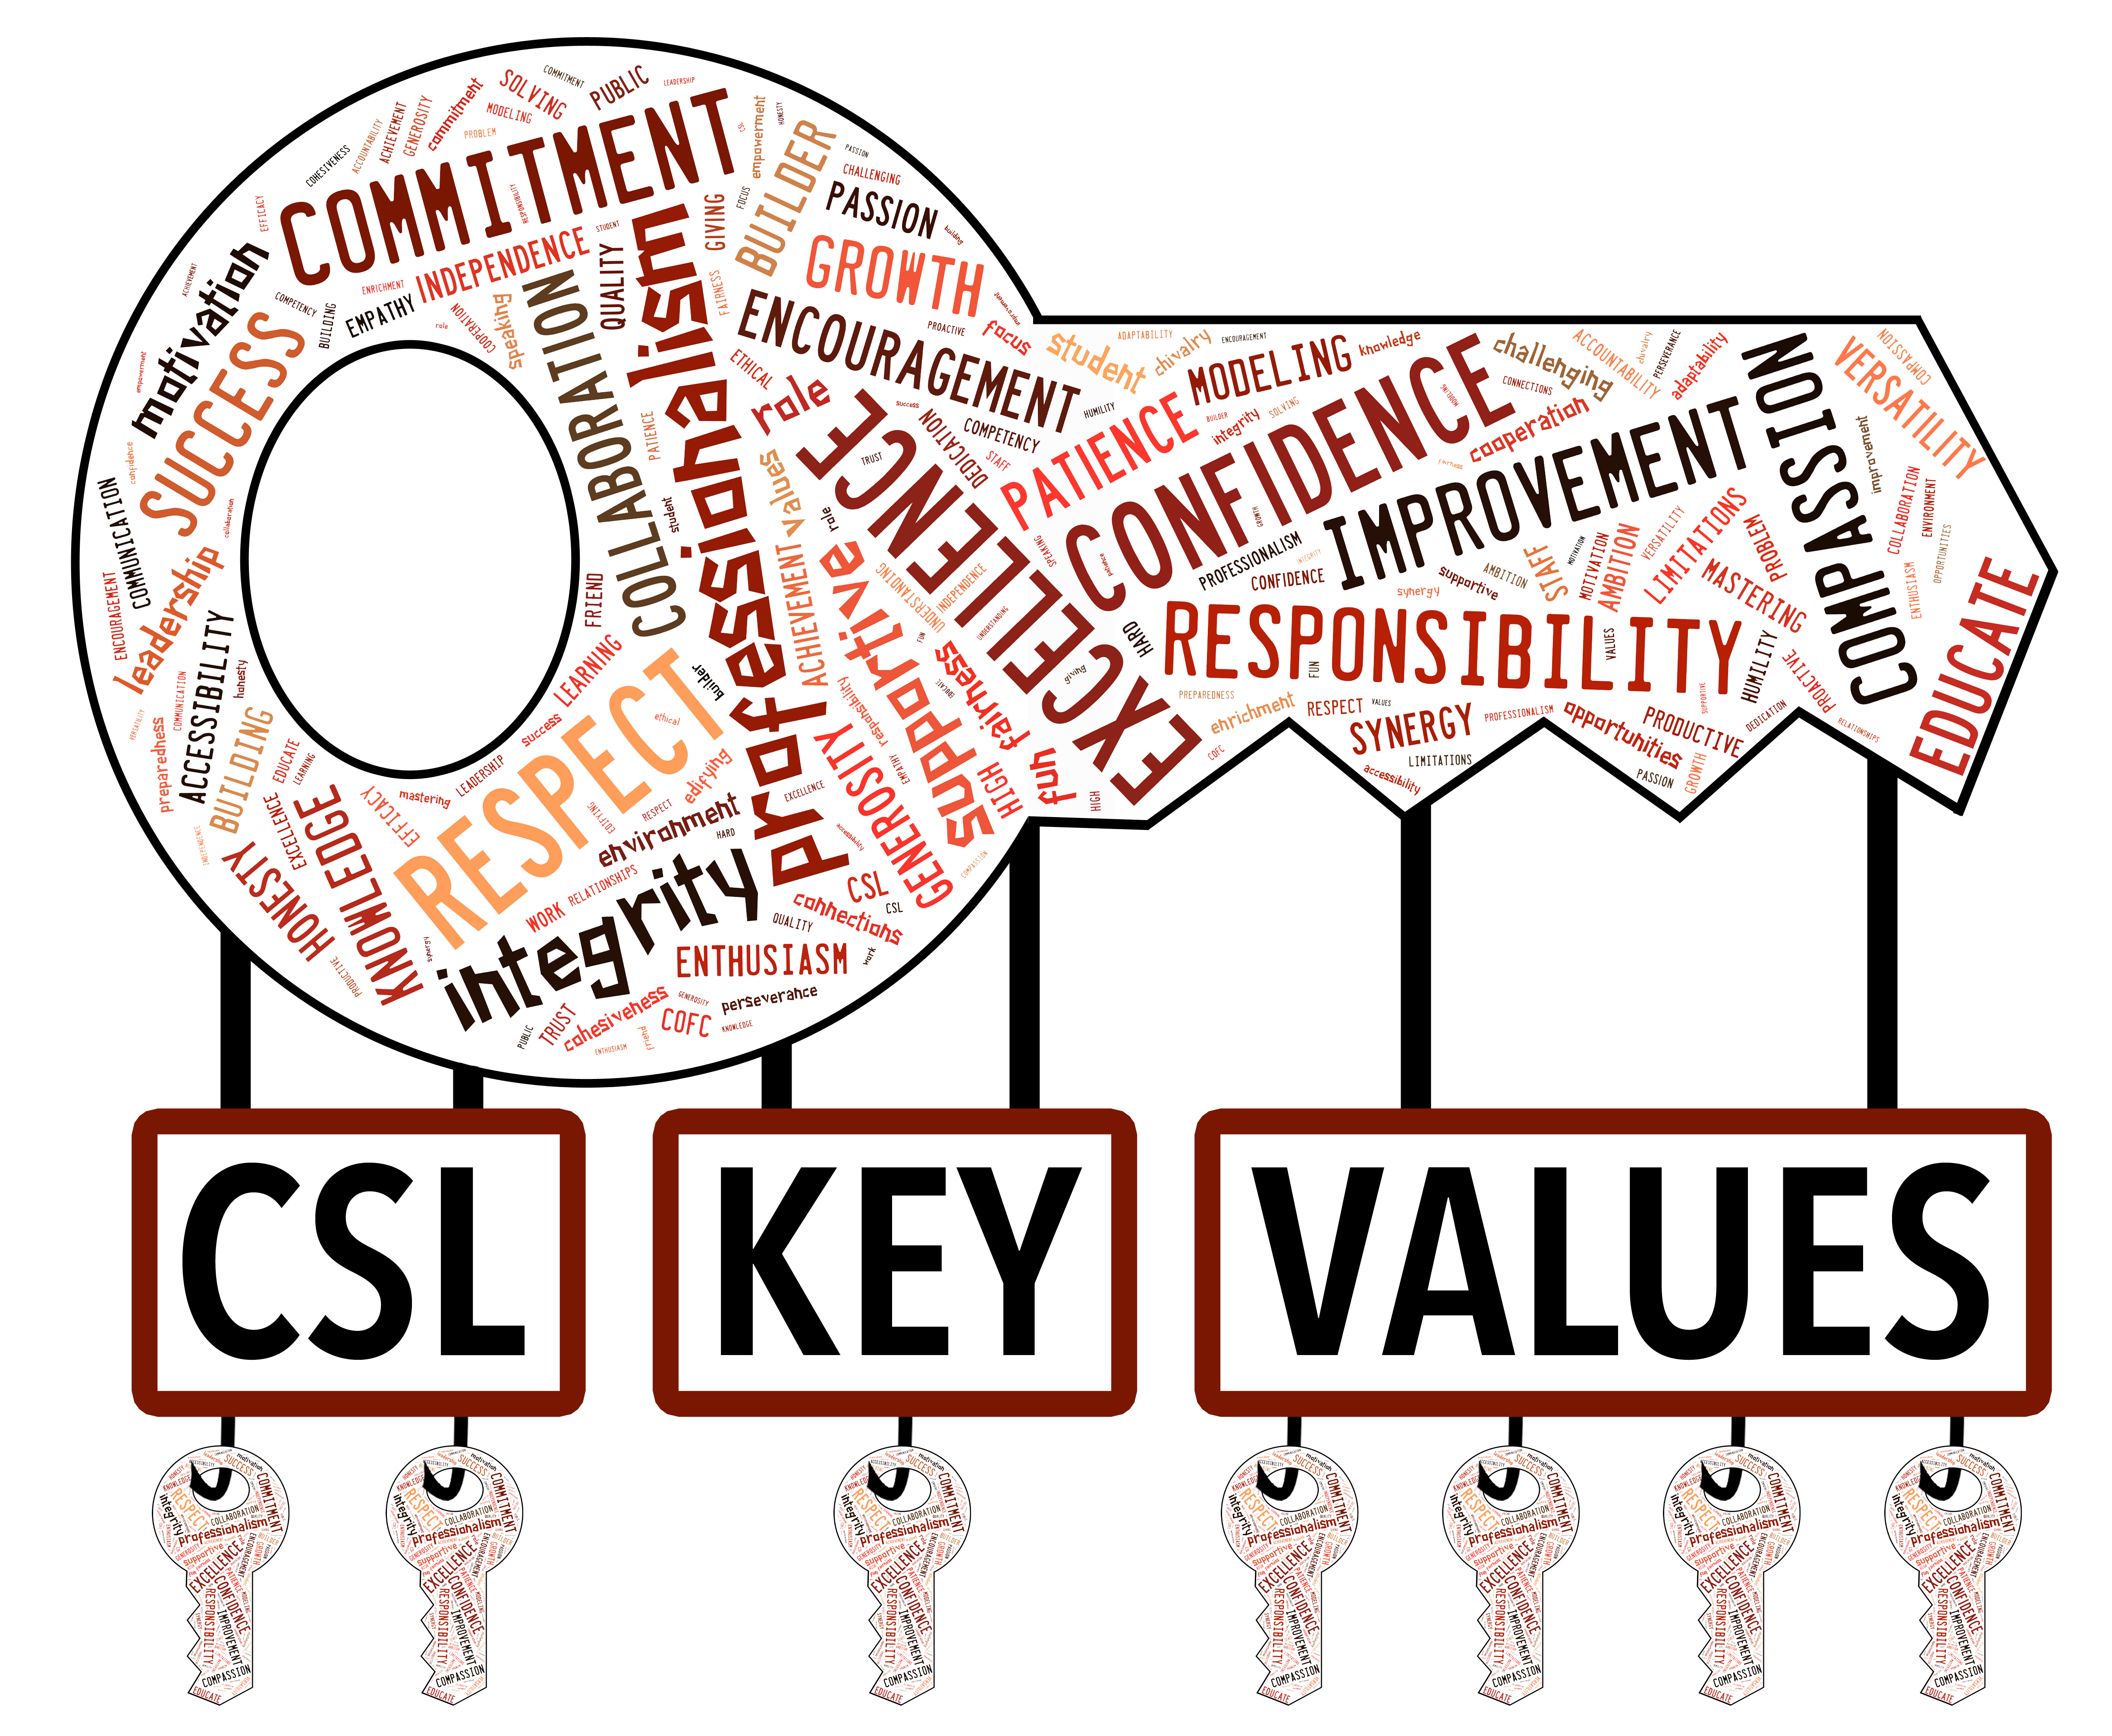 CSL Key Values